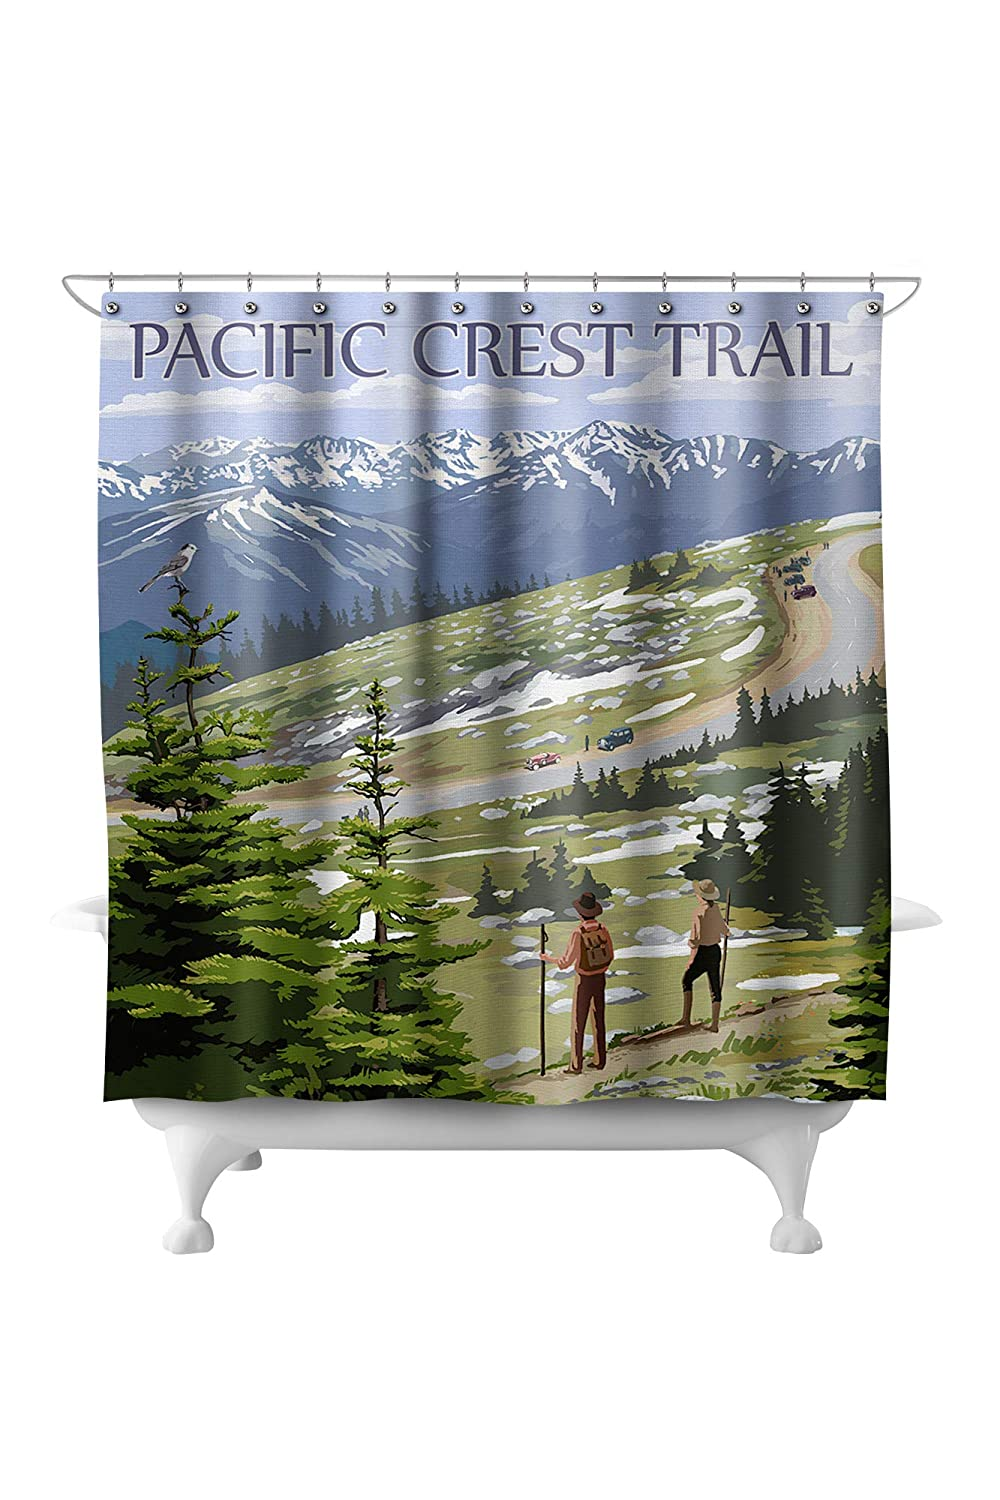 Pacific Crest Trail and Hikers 56794 (74x74 Polyester Shower Curtain)